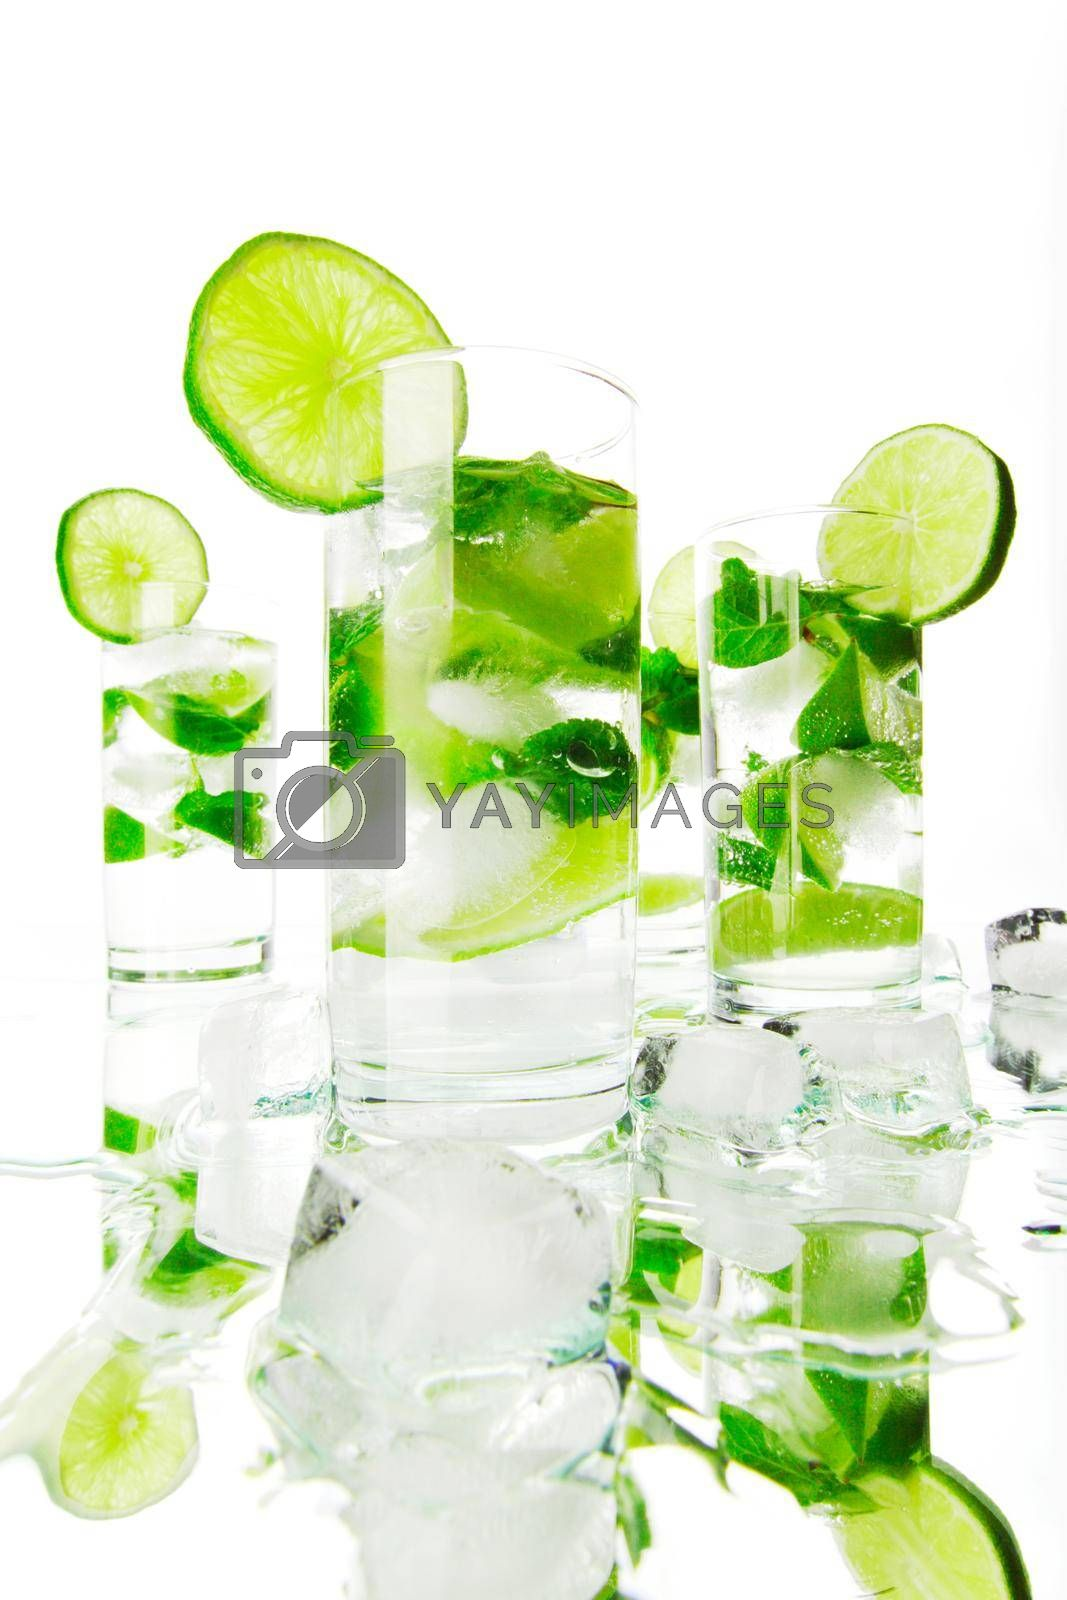 Royalty free image of Mojito cocktails by Yellowj